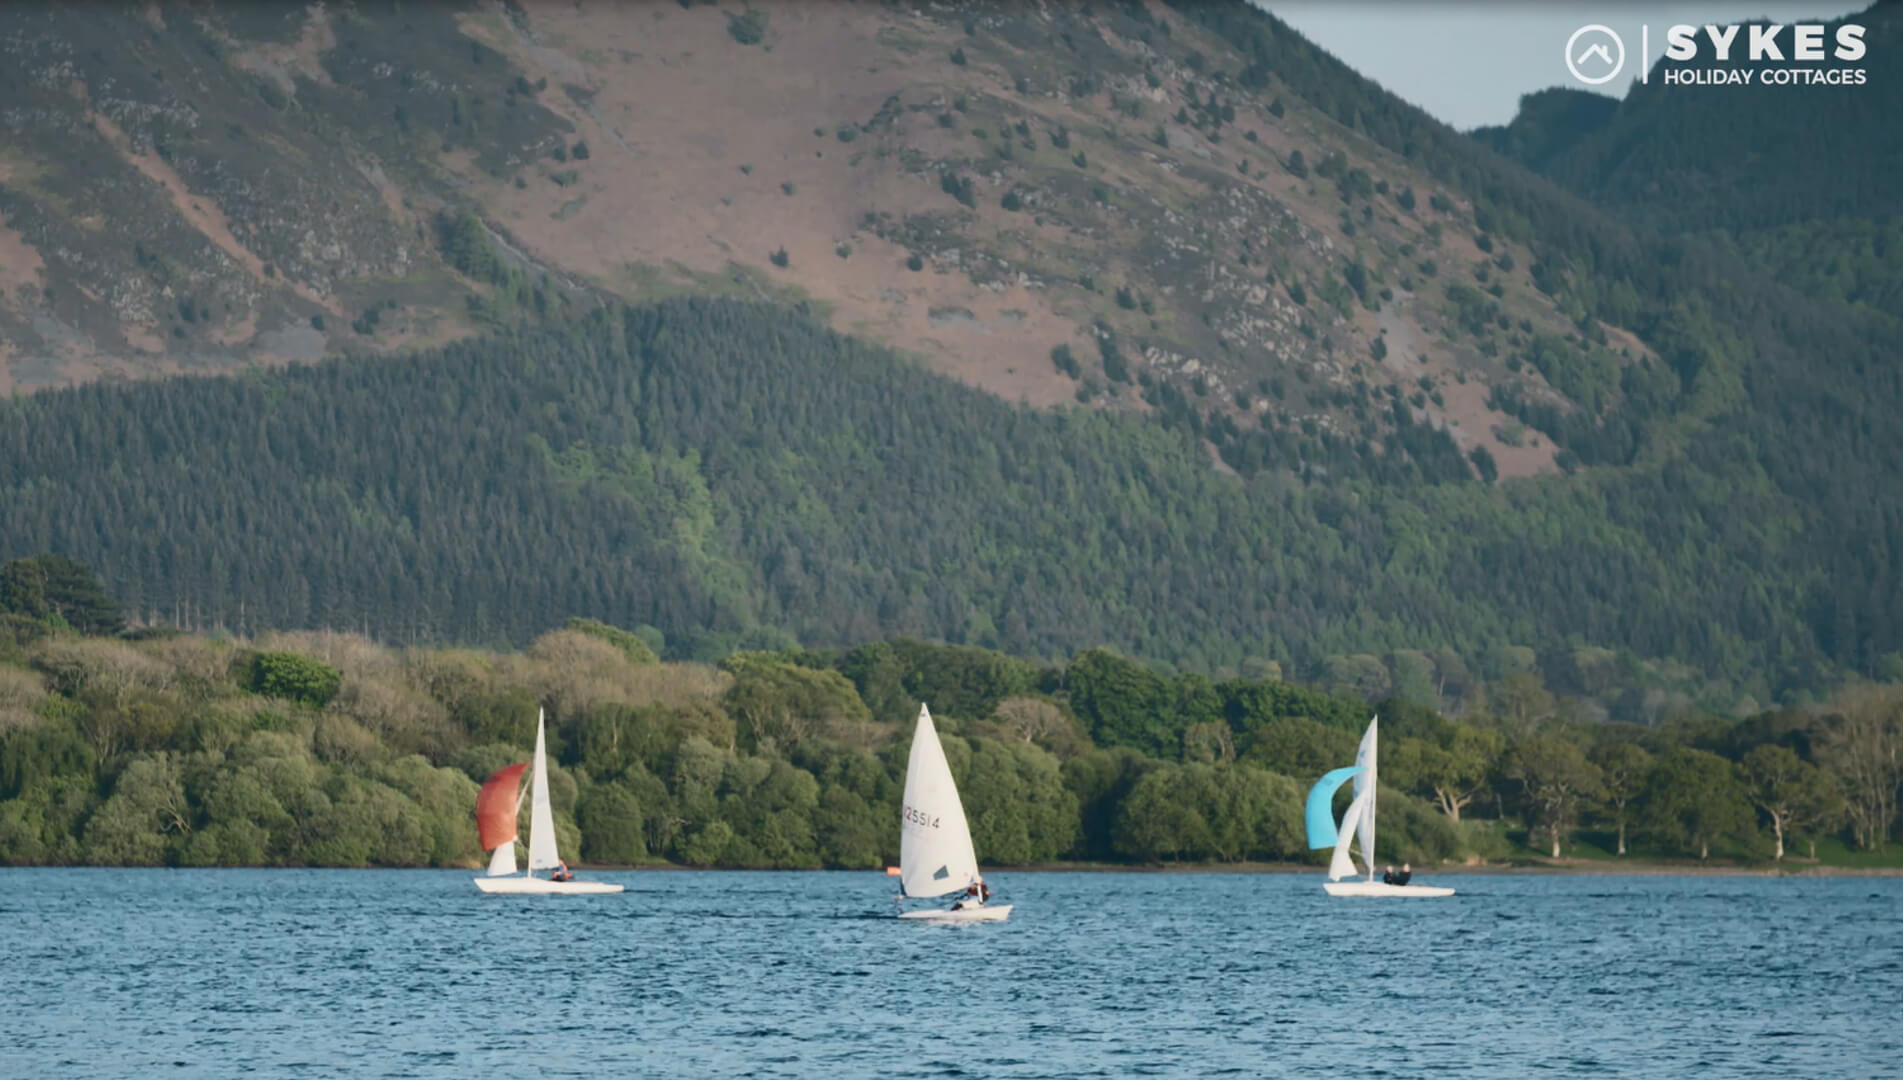 Sail boats on a lake in the lake district